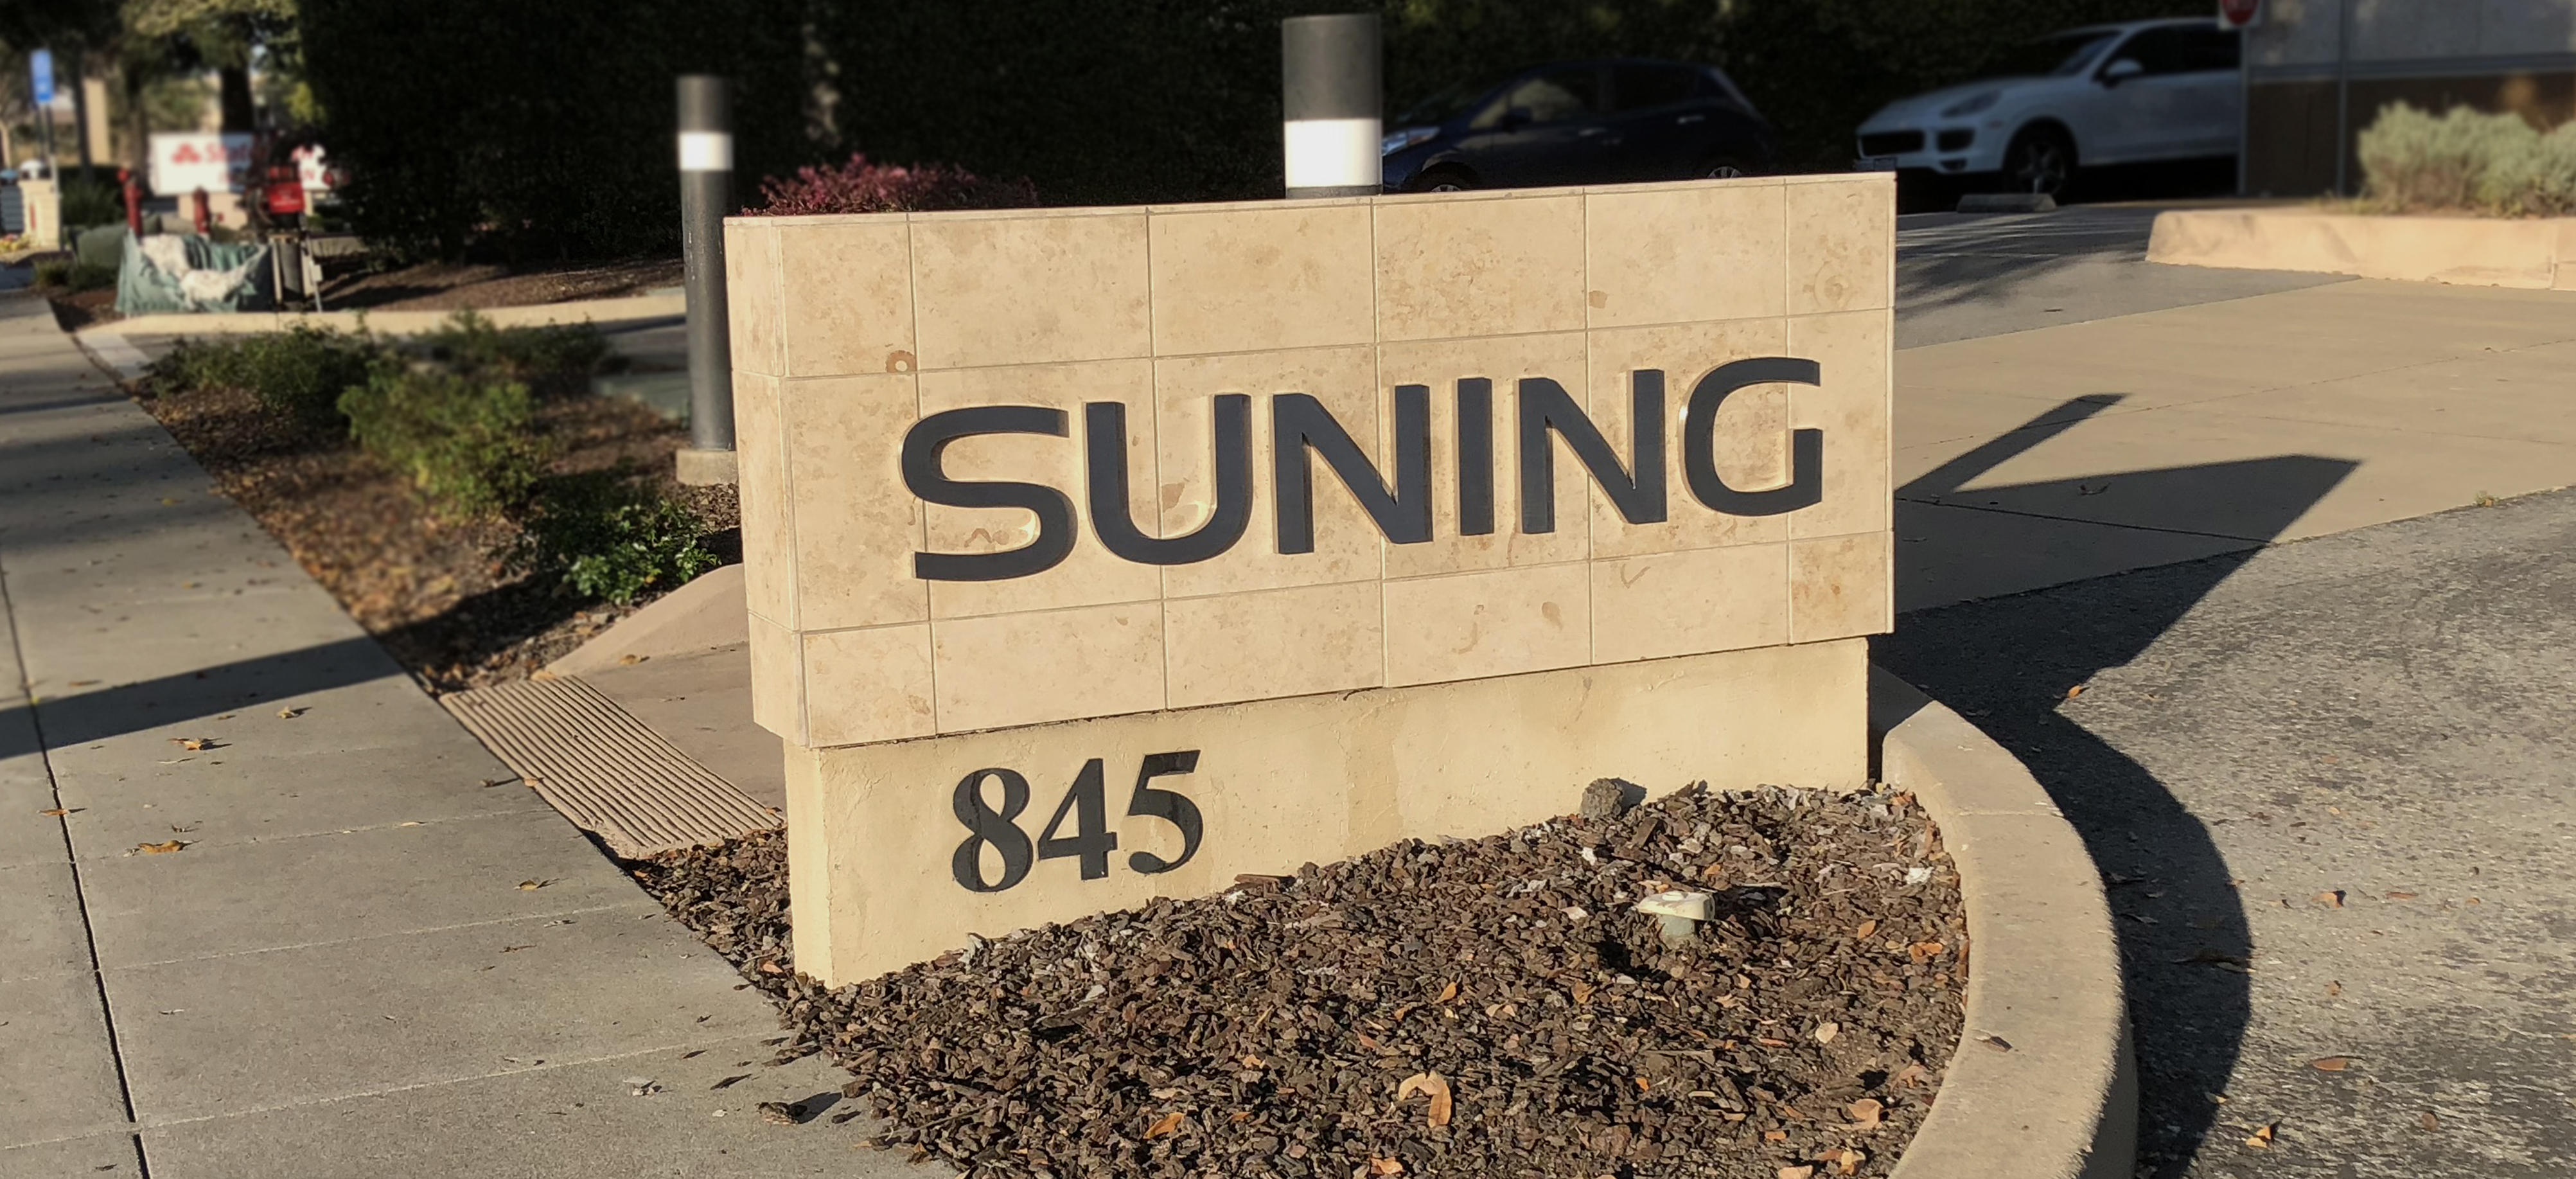 Mounment Sign With Stainless Steel